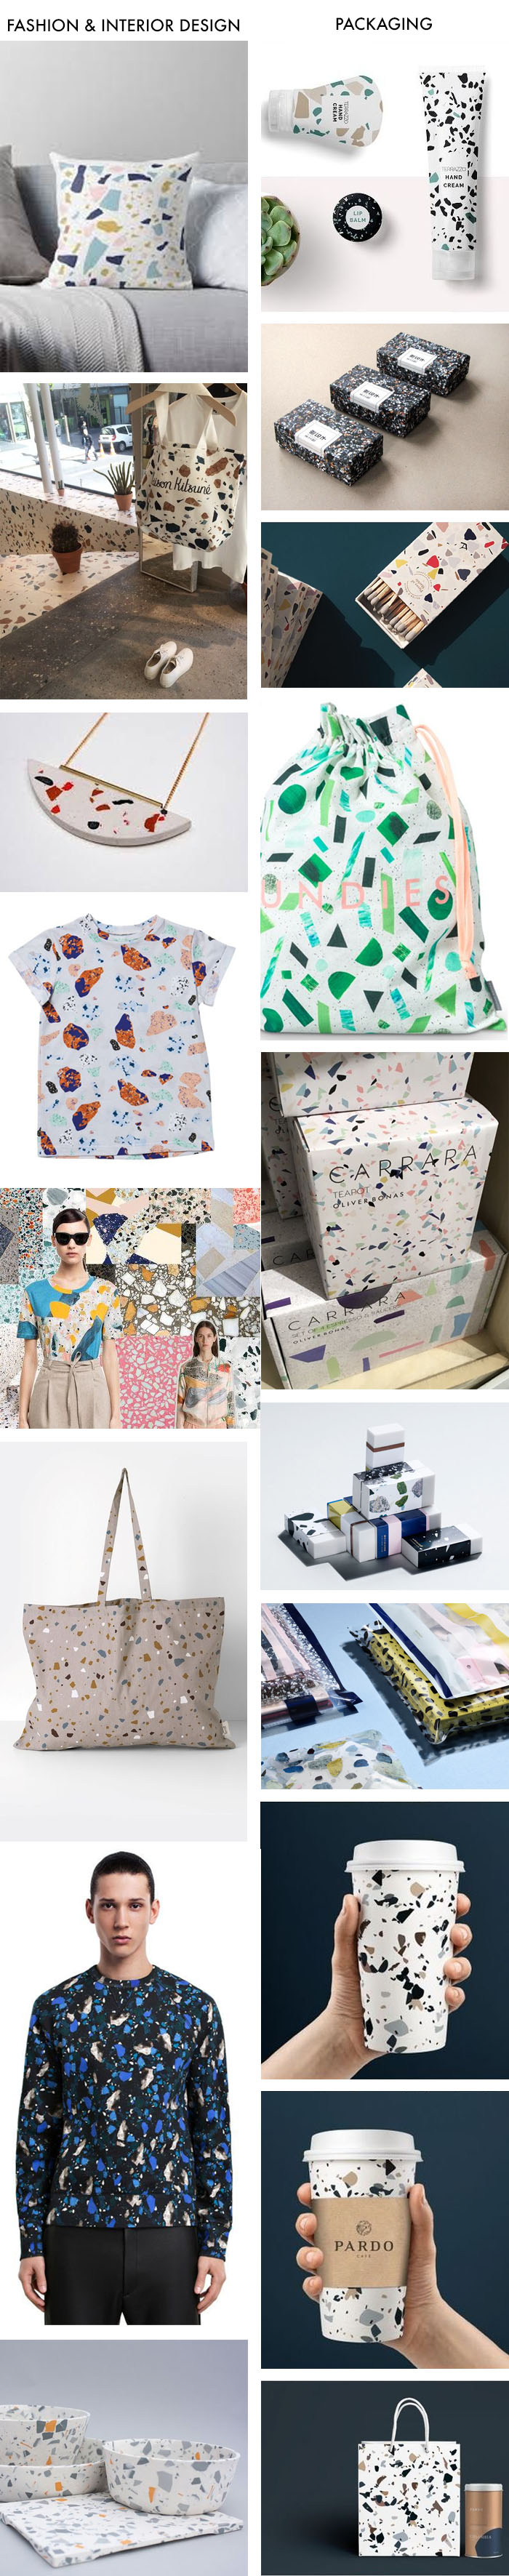 Terrazzo: Fashion & Interior vs. Packaging